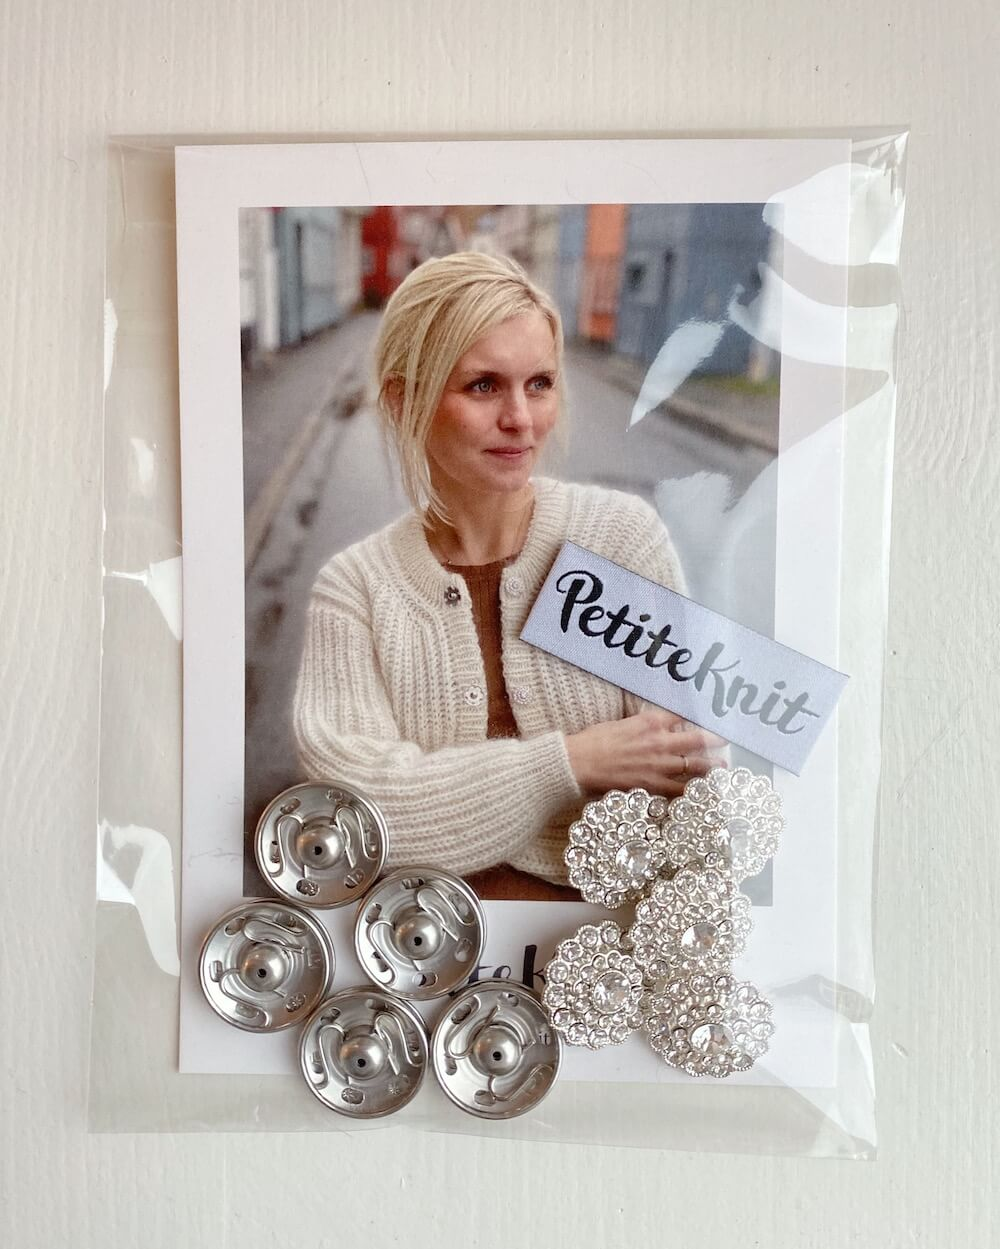 Blingknapper til September Jakke // Bling Buttons for September Jacket